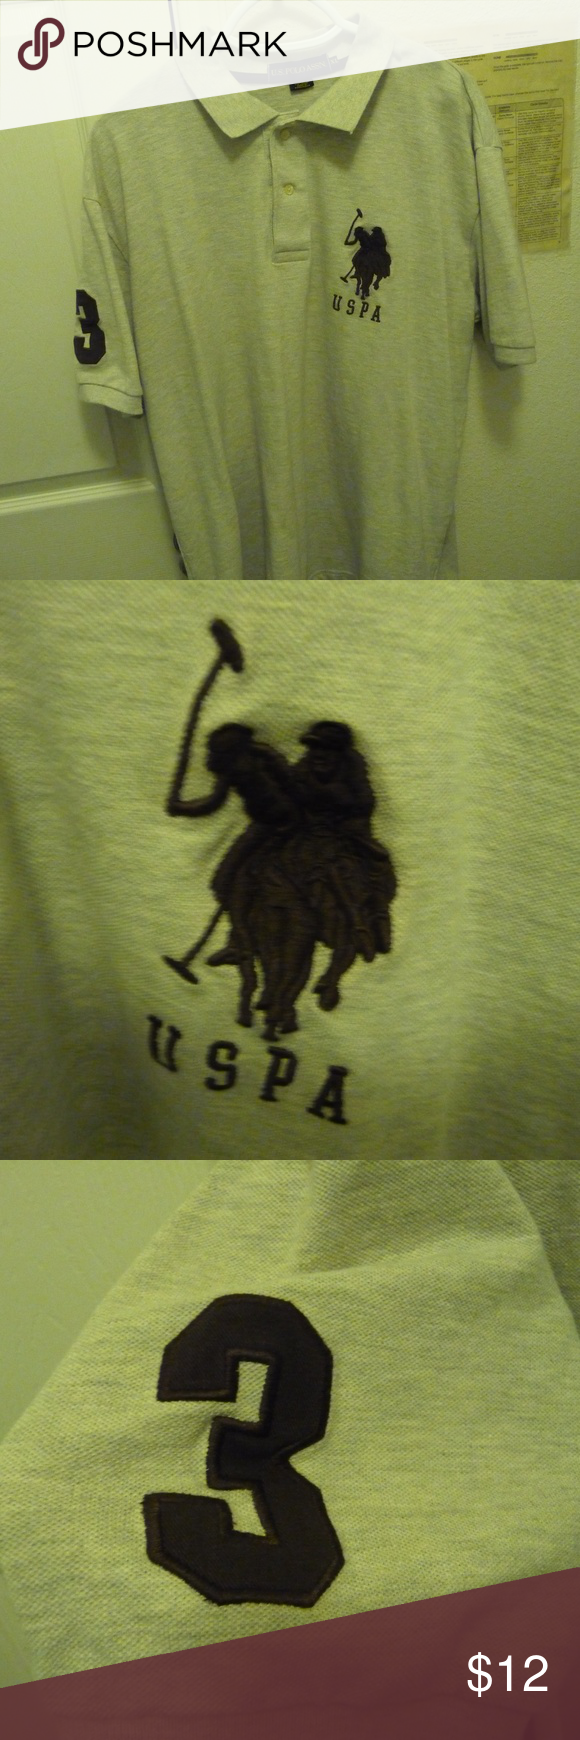 Us Polo Assn By Ralph Lauren Uspa Men S Polo Us Polo Assn By Ralph Lauren Uspa Men S Polo S S Brown With 3 On Sleve With Xl Ve Us Polo Assn Polo